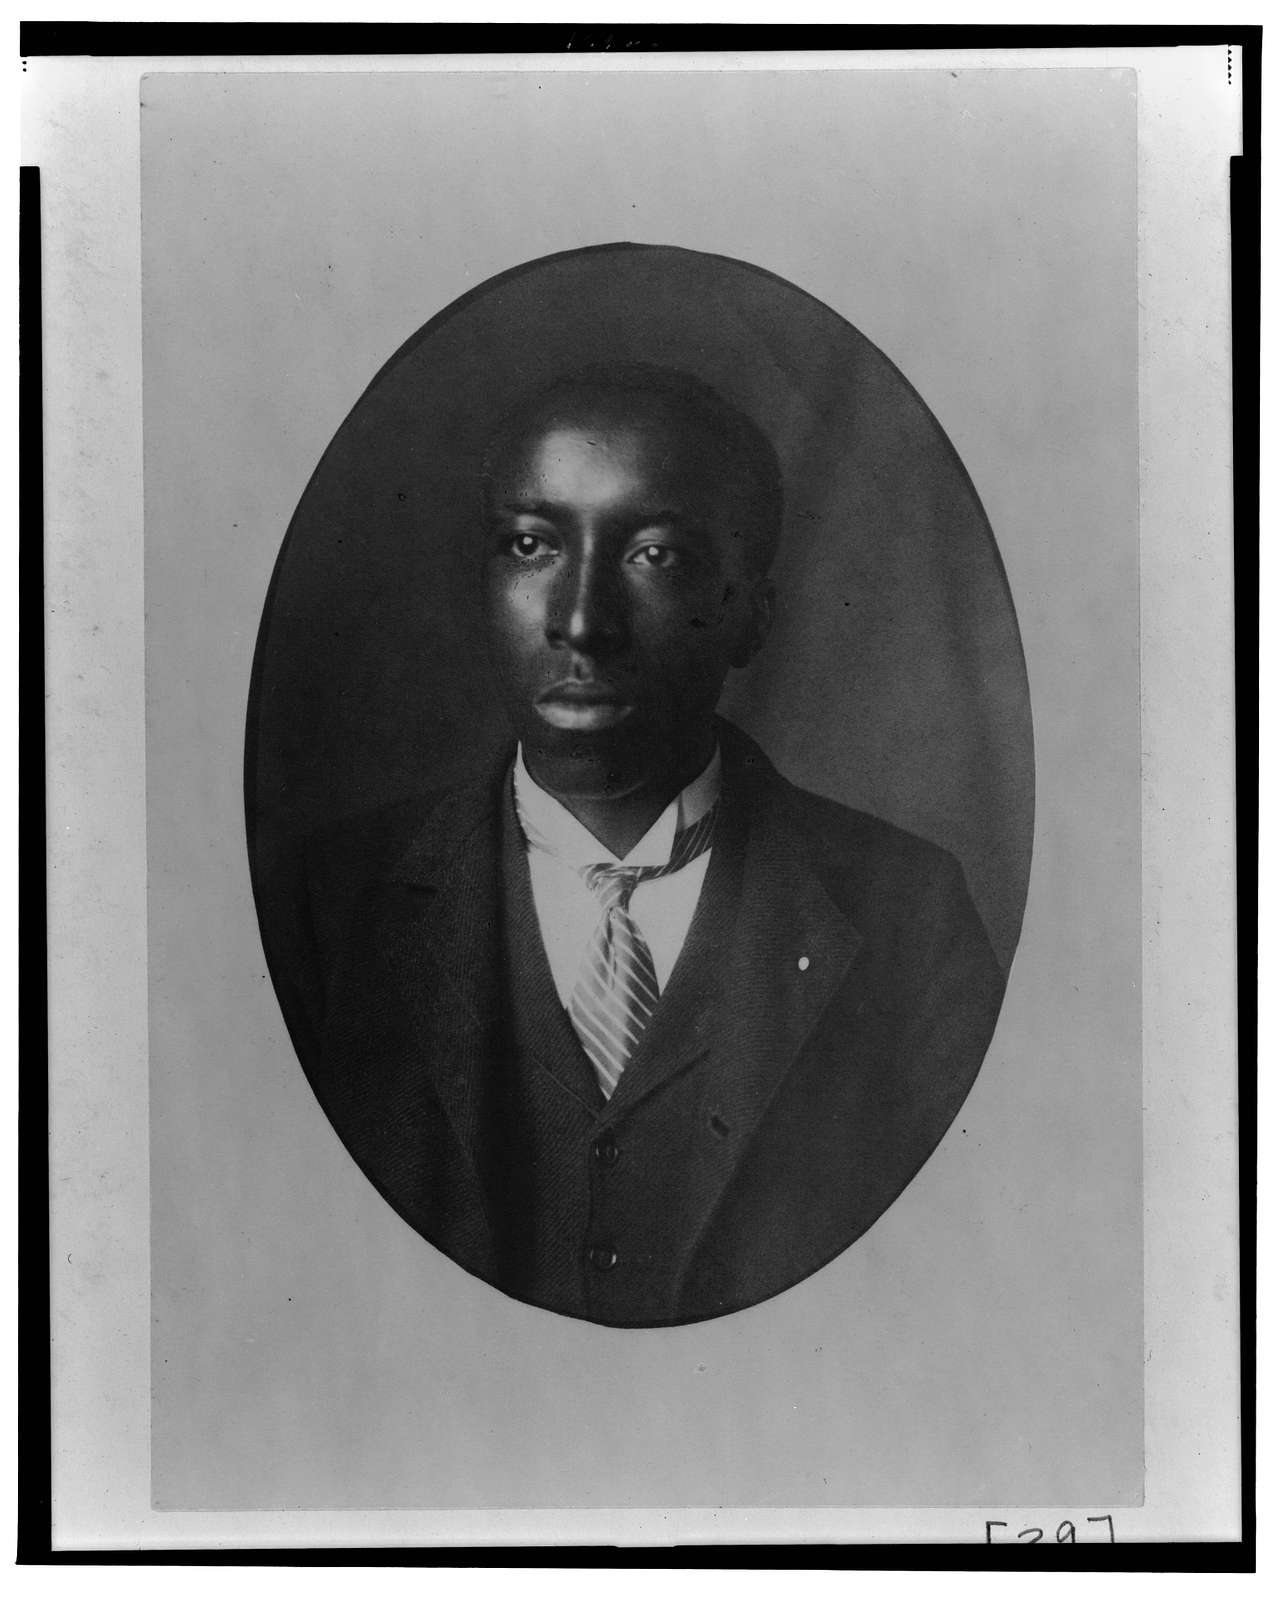 [African American man, head-and-shoulders portrait, facing slightly left]